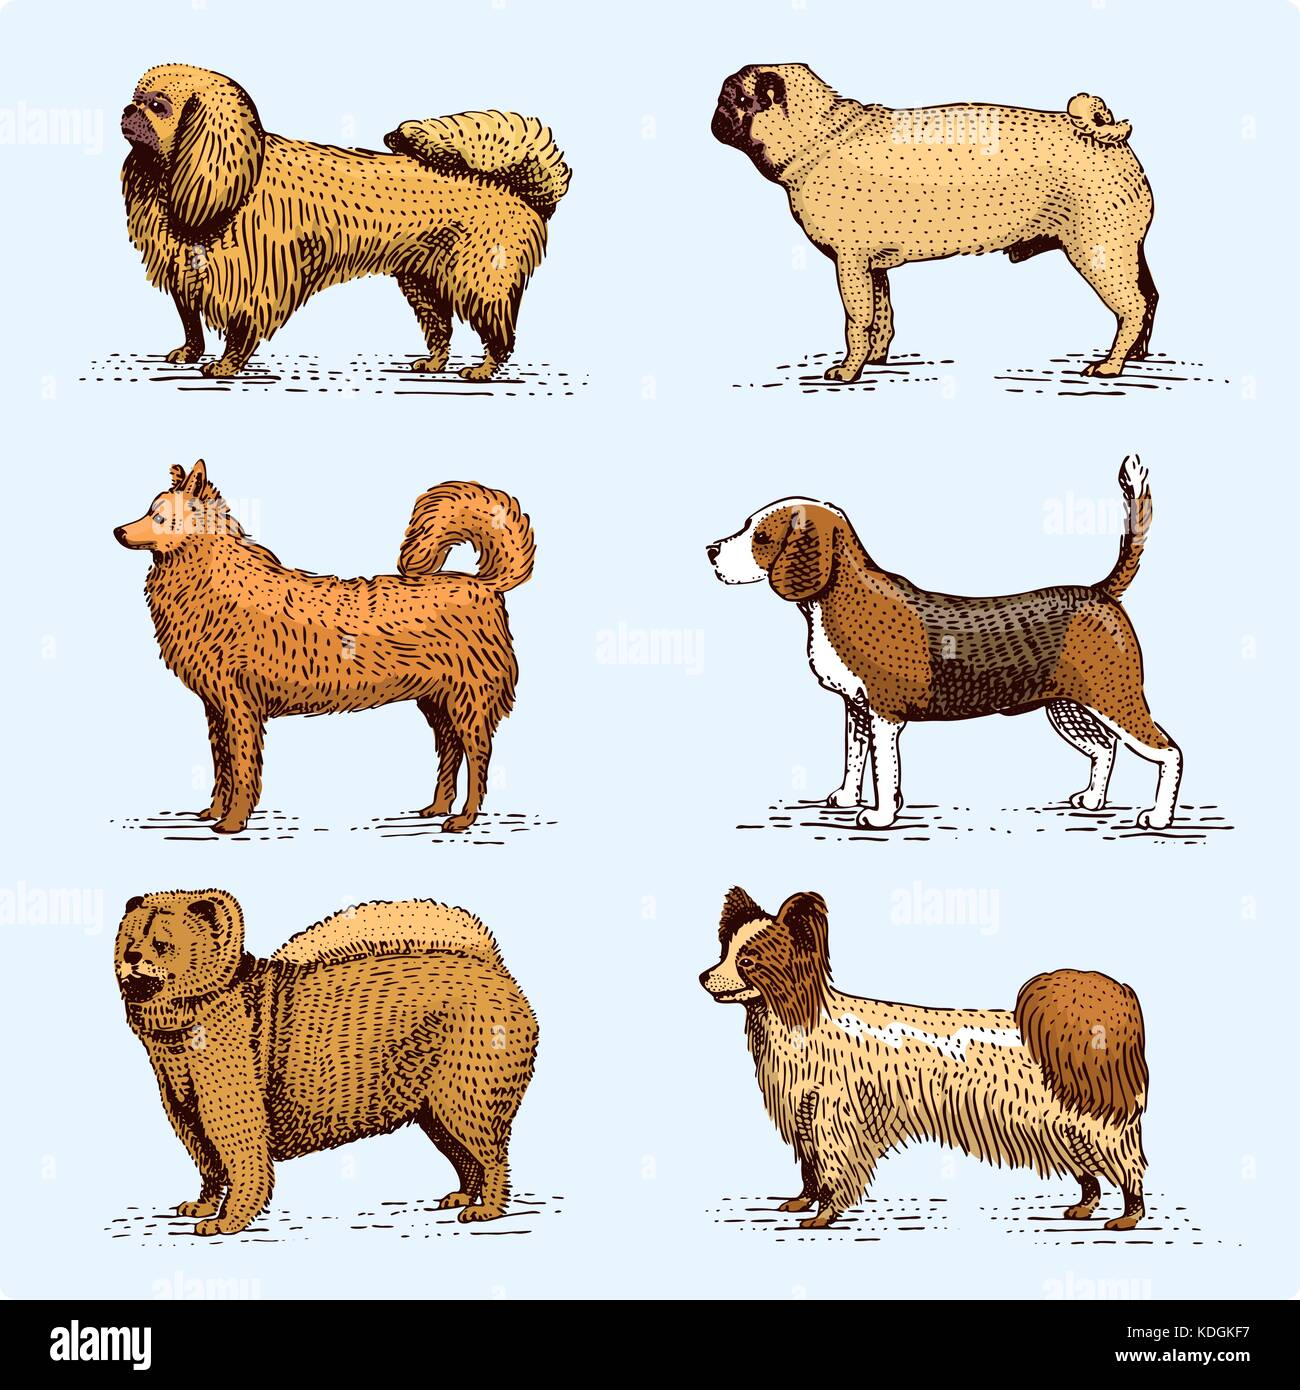 dog breeds engraved, hand drawn vector illustration in woodcut scratchboard style, vintage drawing species. pug - Stock Image